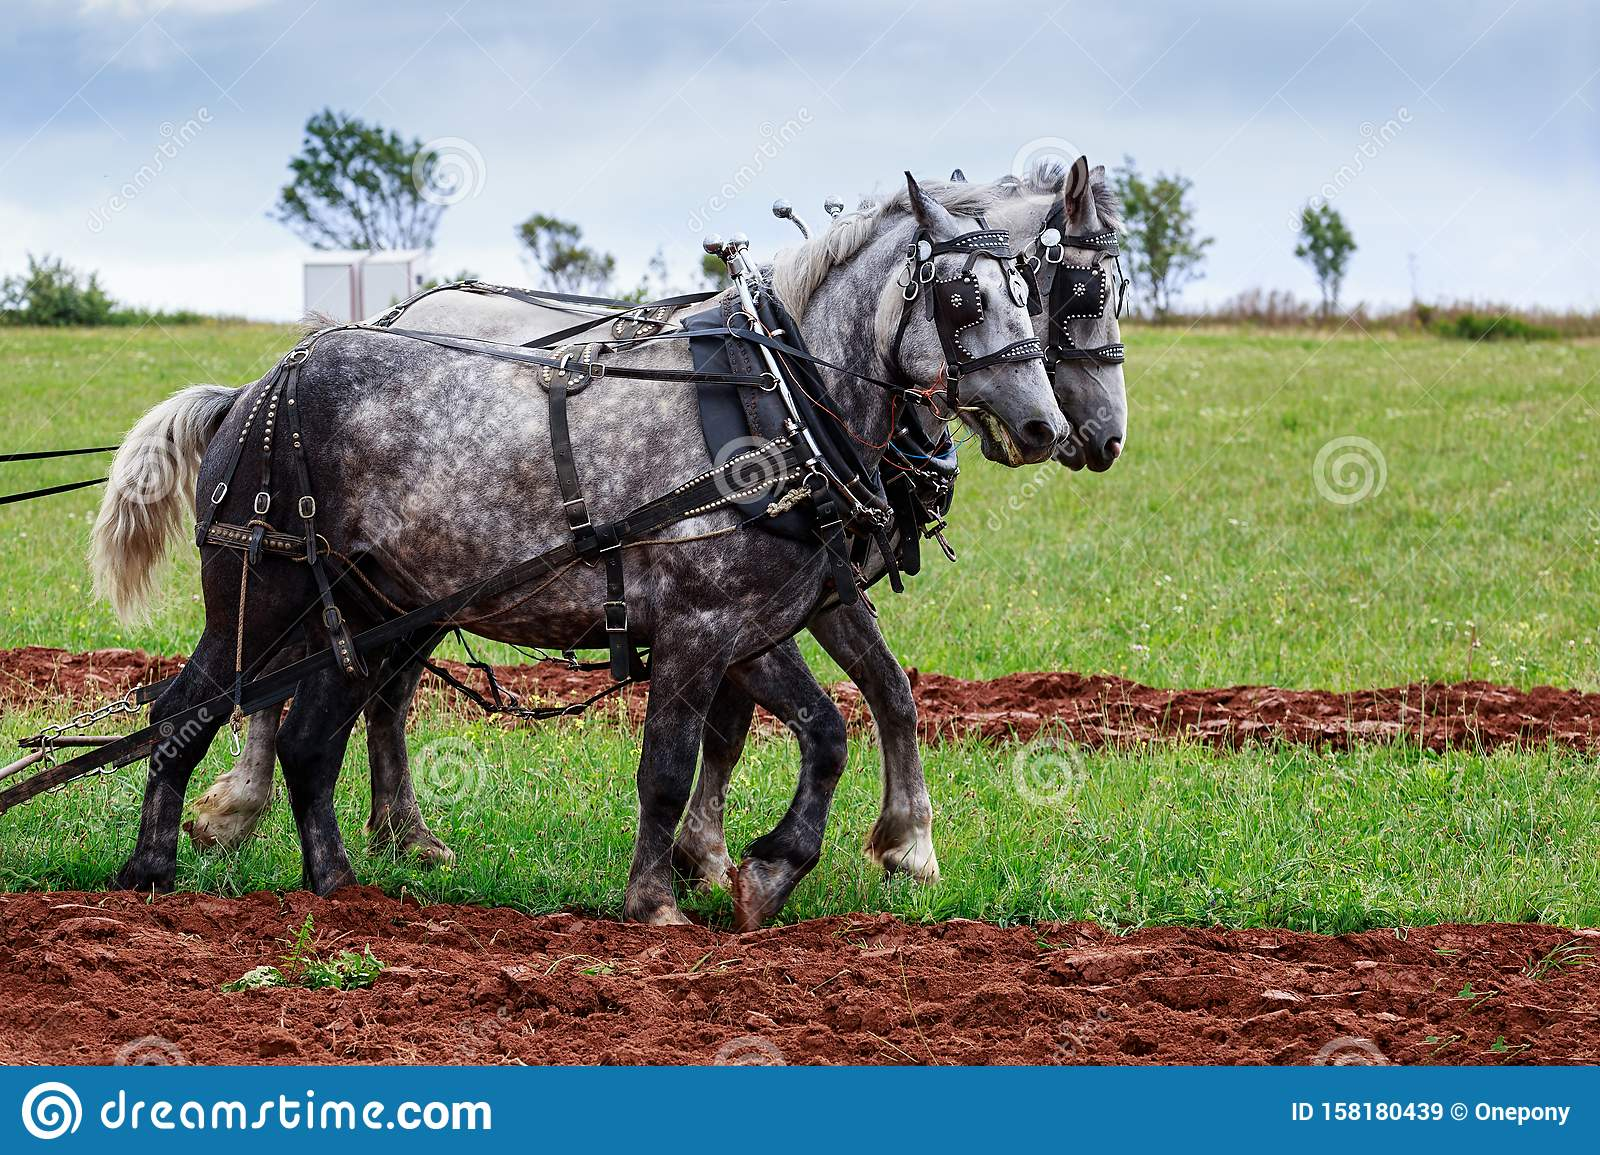 Draft Horses Working The Field Stock Image Image Of Percheron Harness 158180439